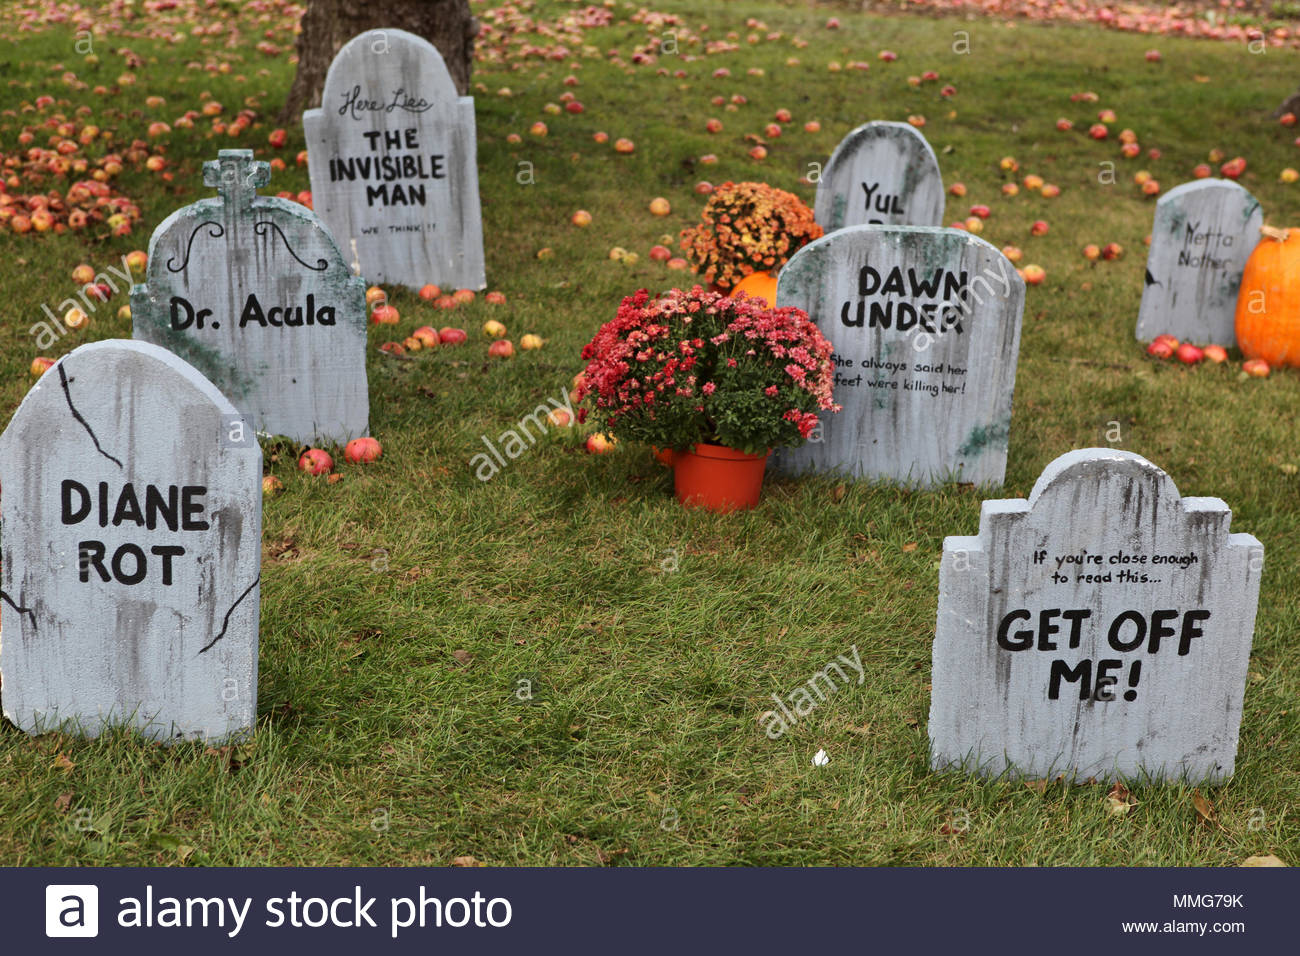 a halloween display featuring tombstones with funny text on a lawn